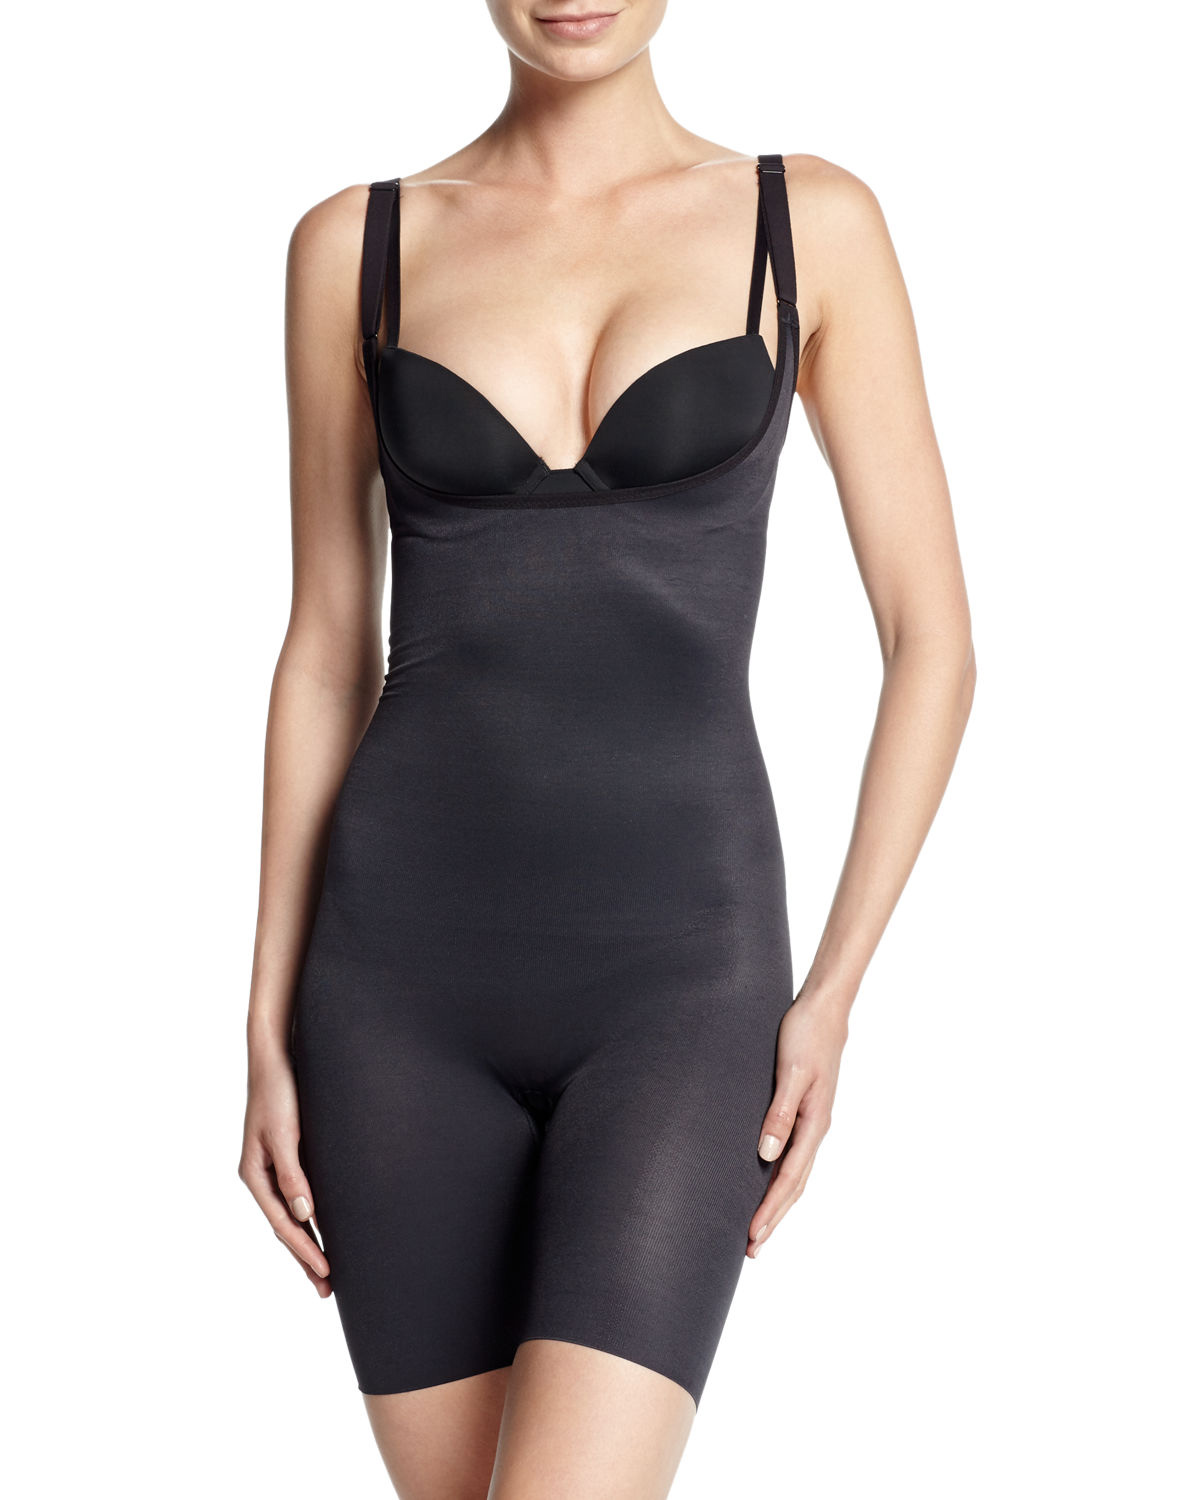 Wacoal Zoned-4-Shape Open-Bust Mid-Thigh Shaper